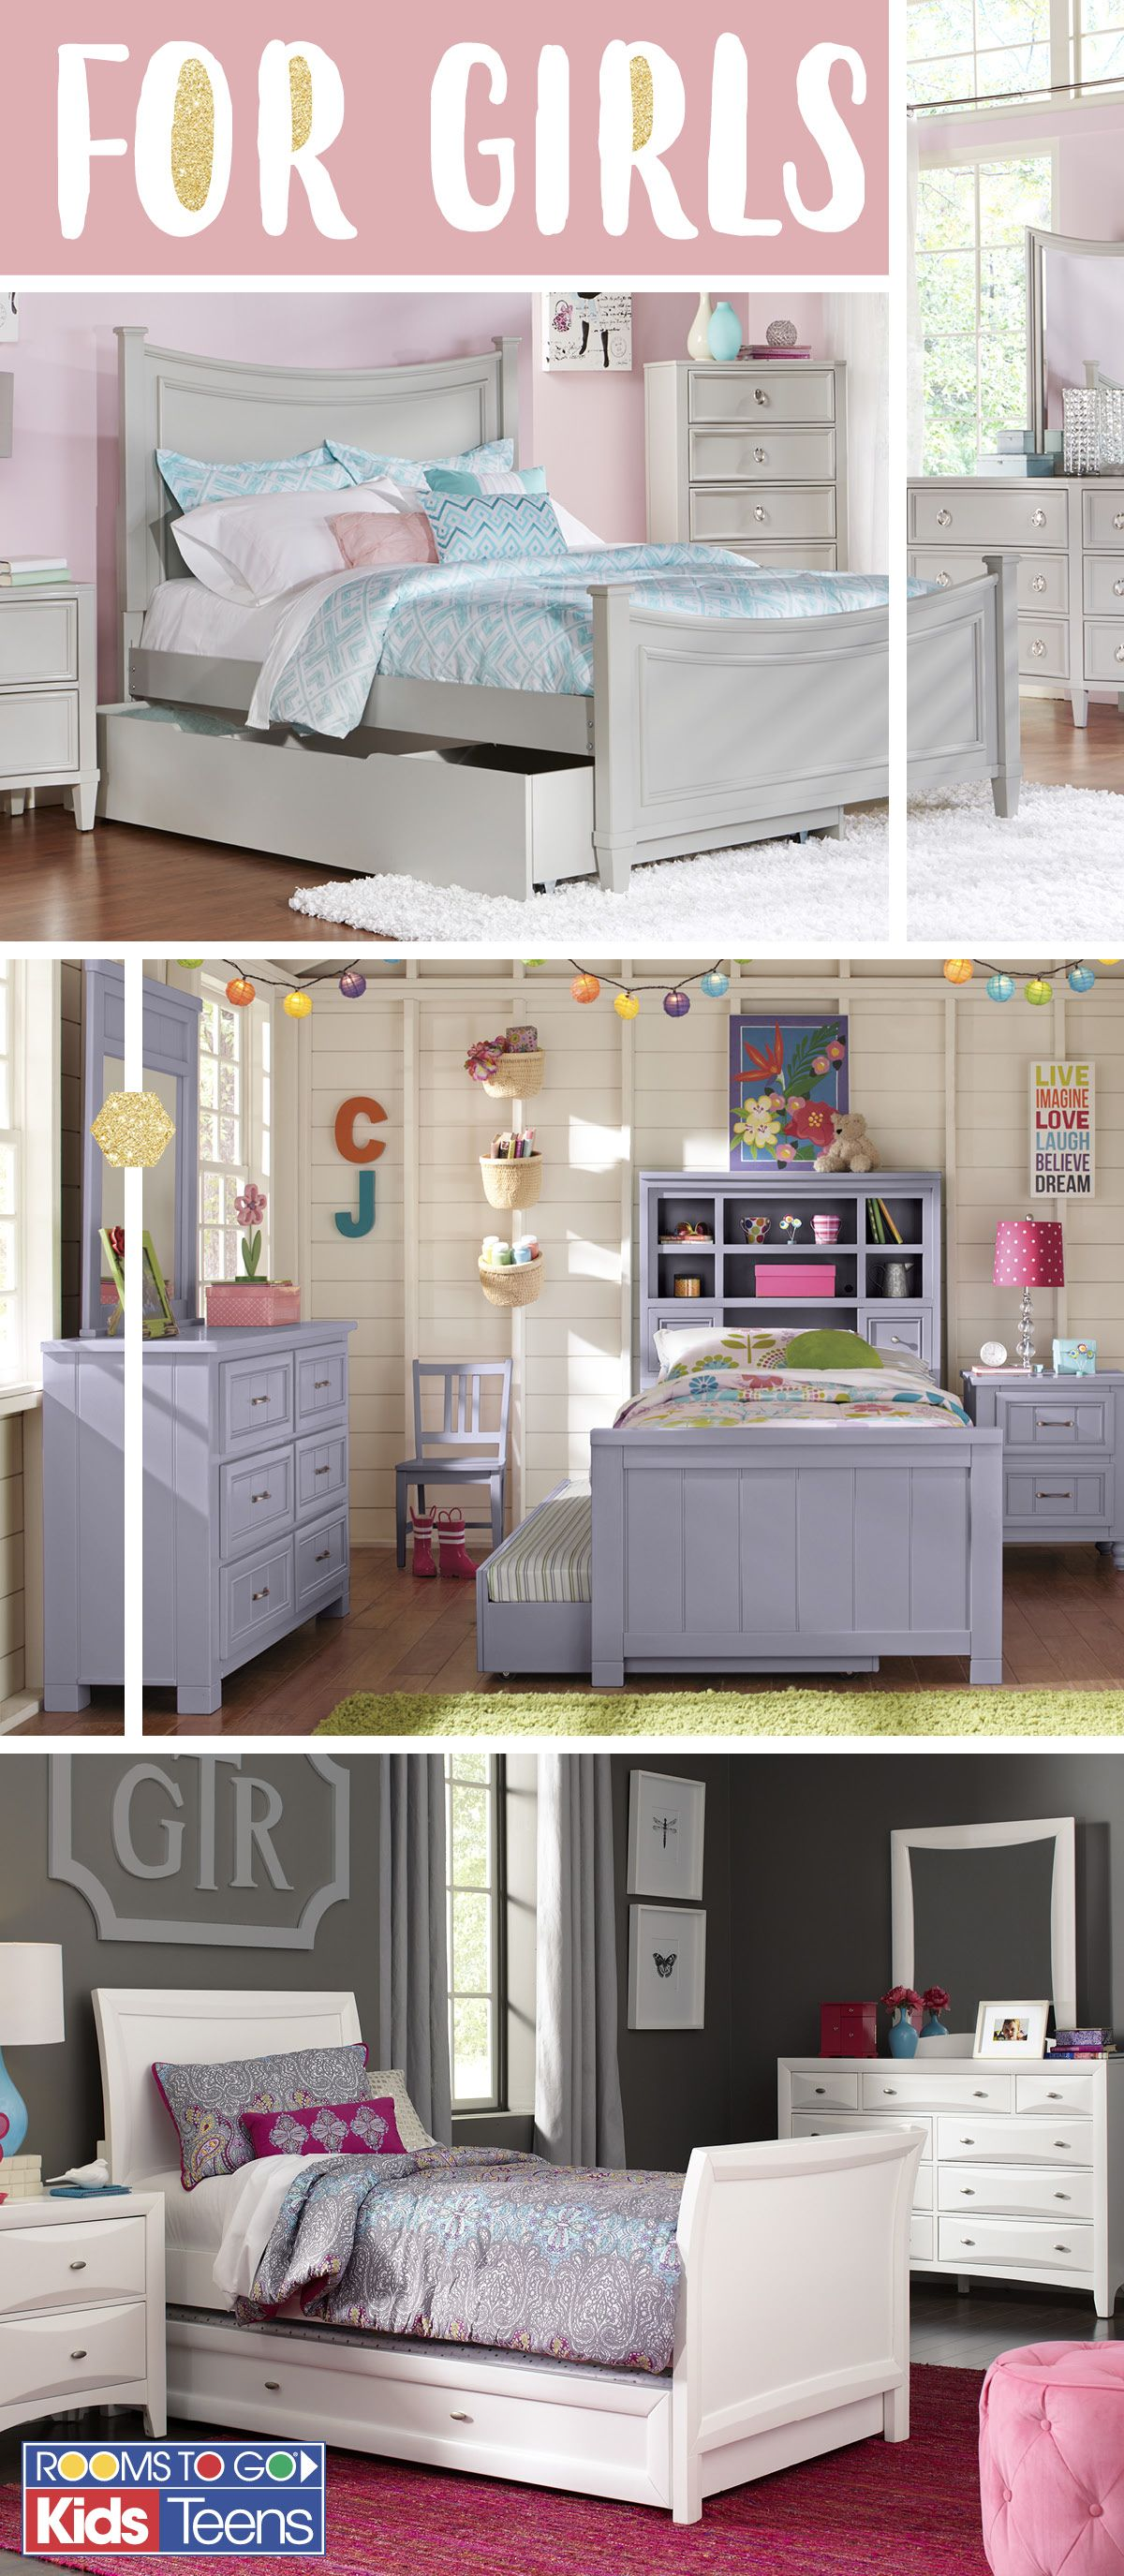 With Decorator Inspired Room Sets That Come In A Range Of Colors